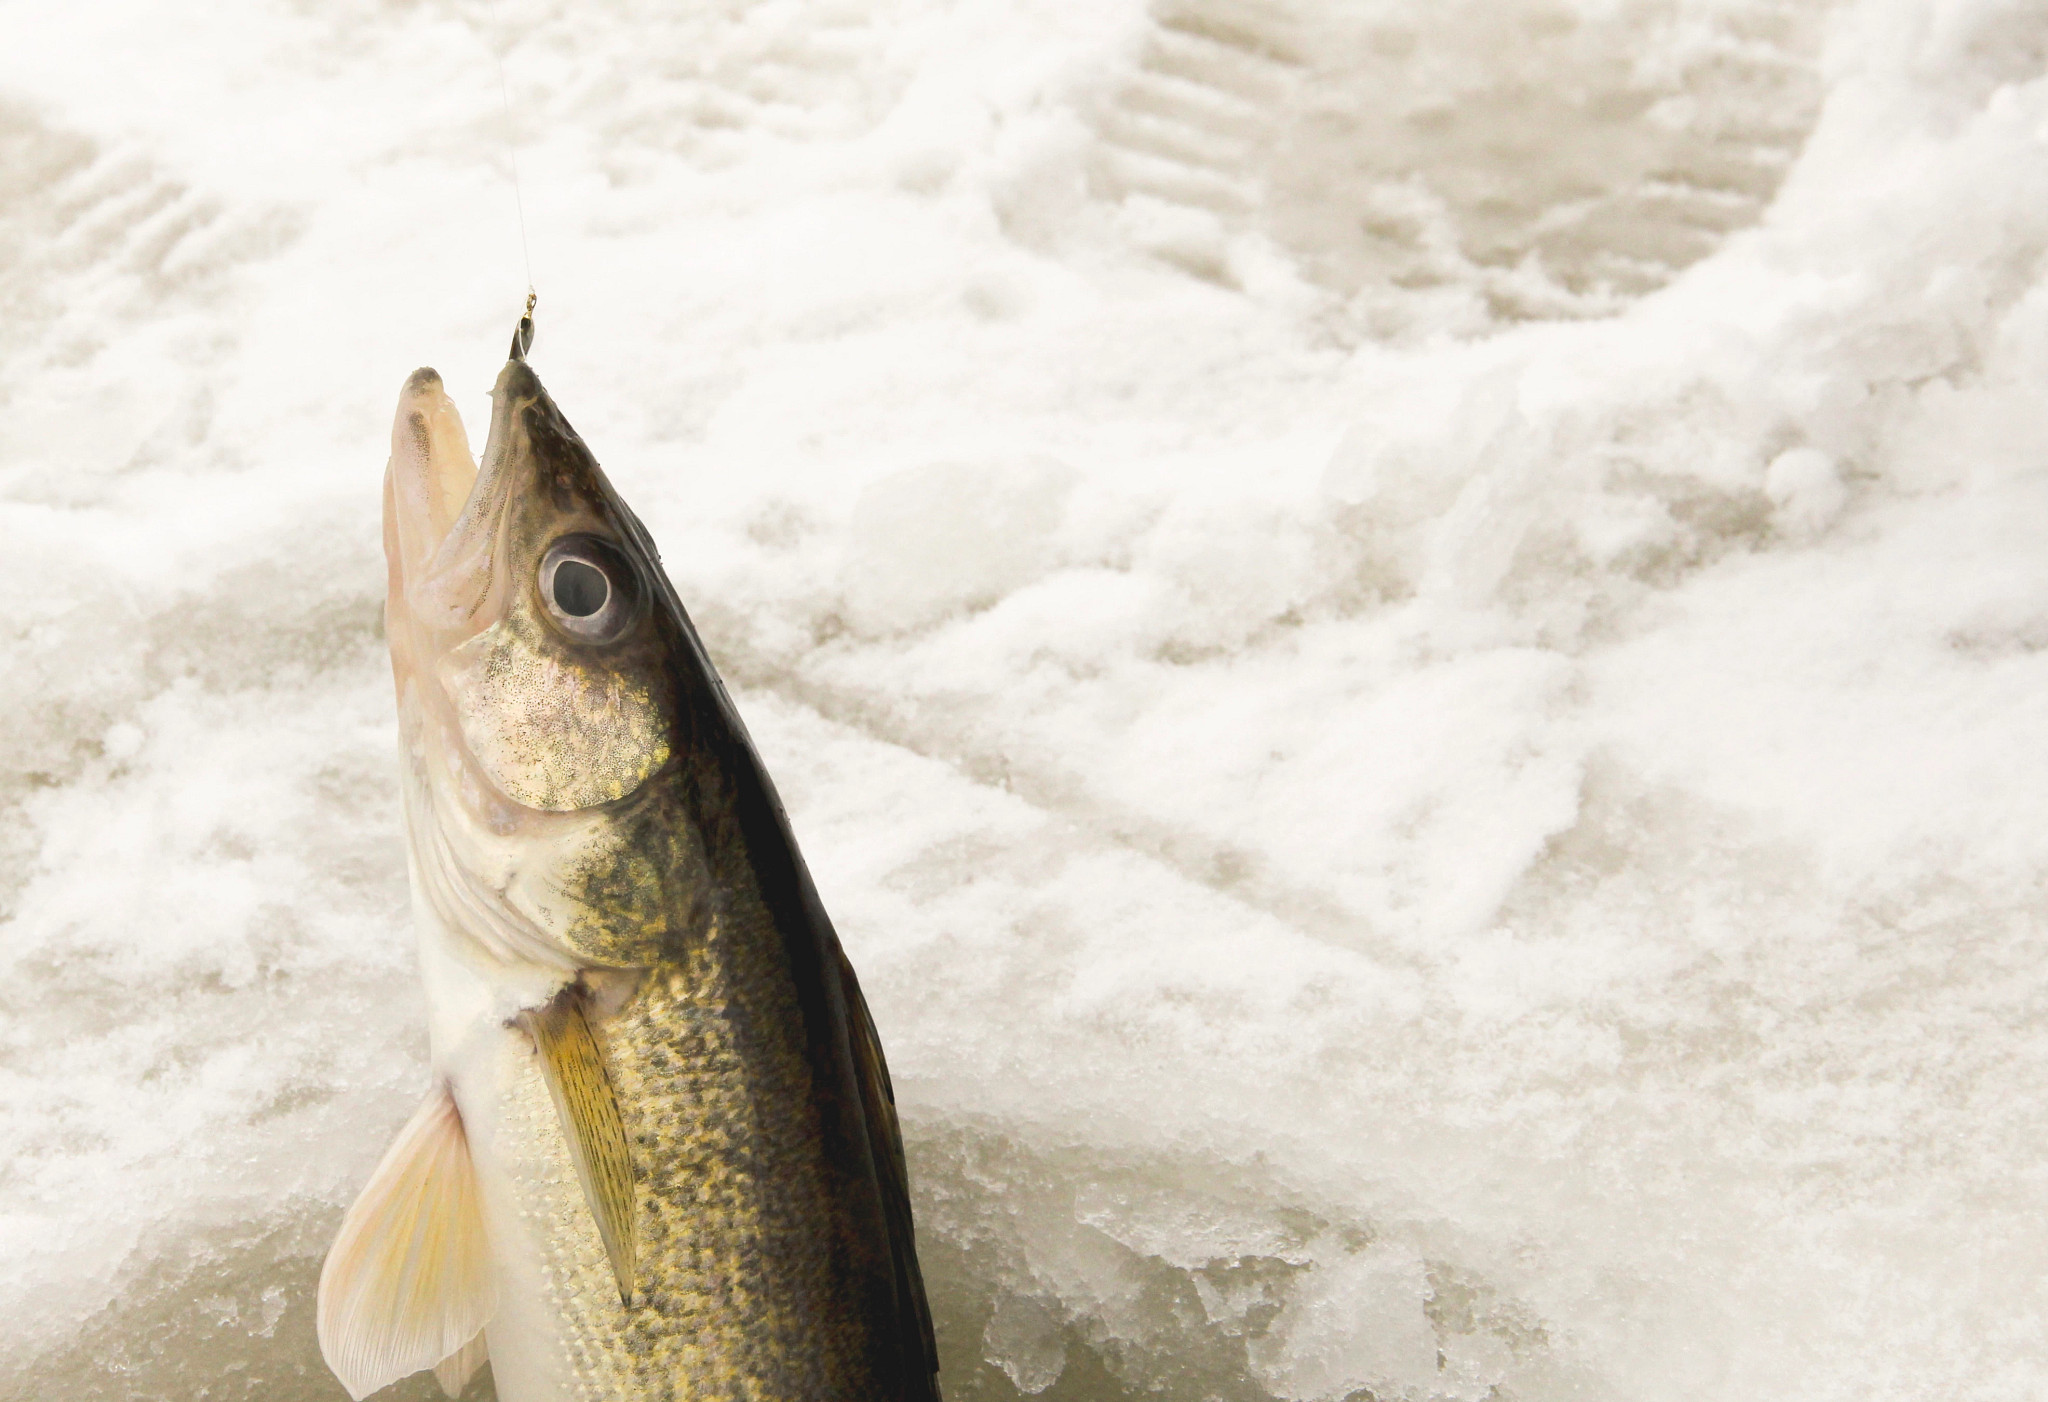 Walleye emerging from an ice fishing hole